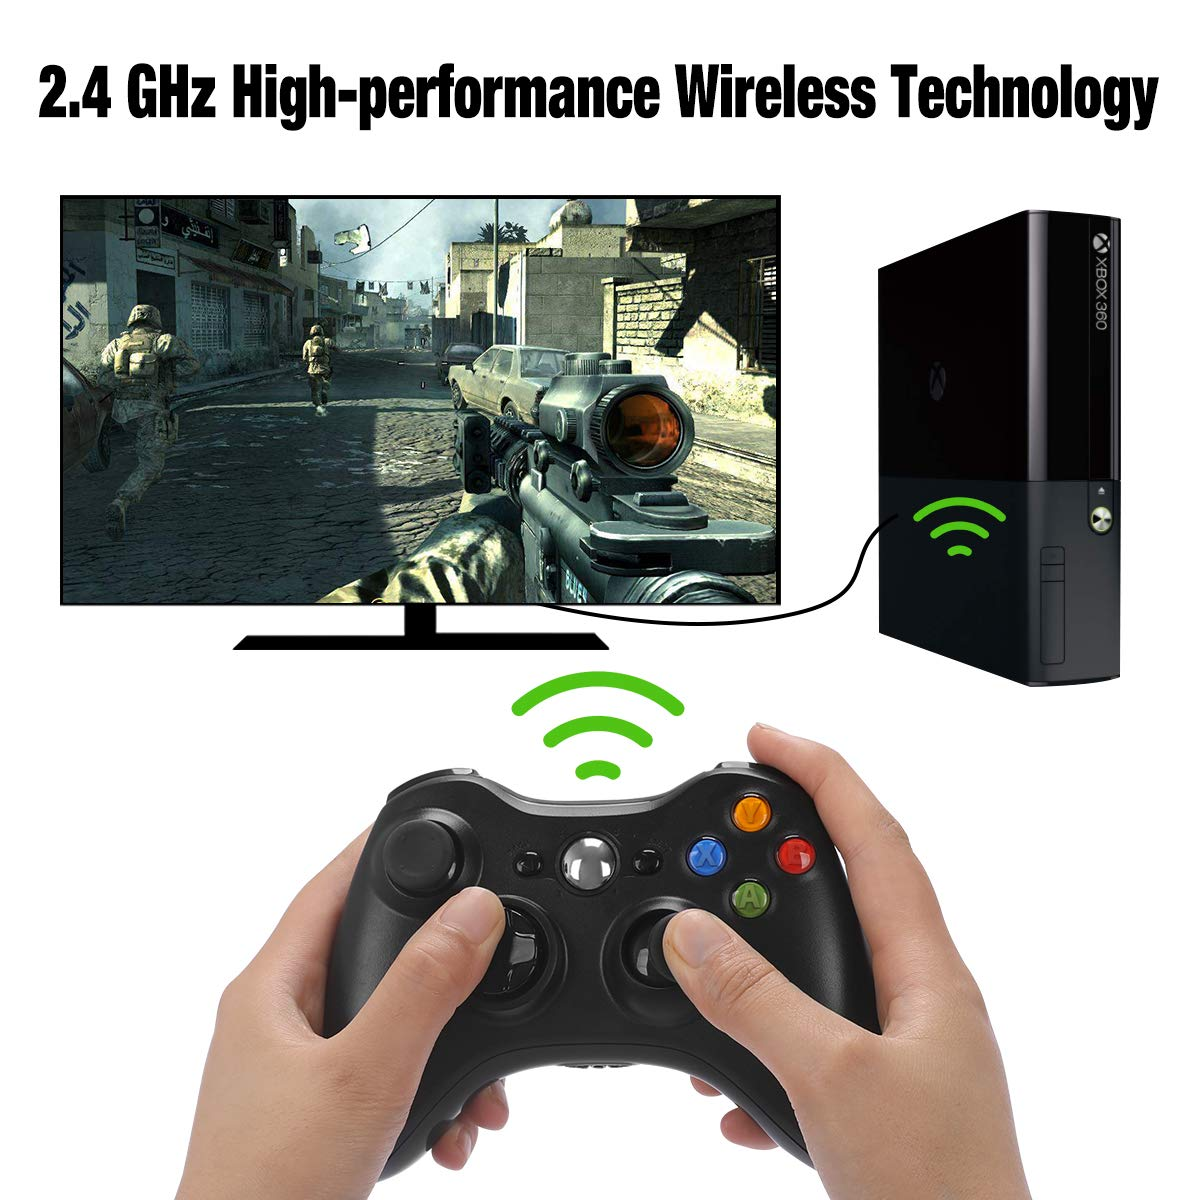 Xbox 360 Wireless Controller, Y Team 2.4GHz Xbox 360 Gamepad Joystick Wireless Controller for Xbox 360 Console and PC Windows 7/8/10 (Black)